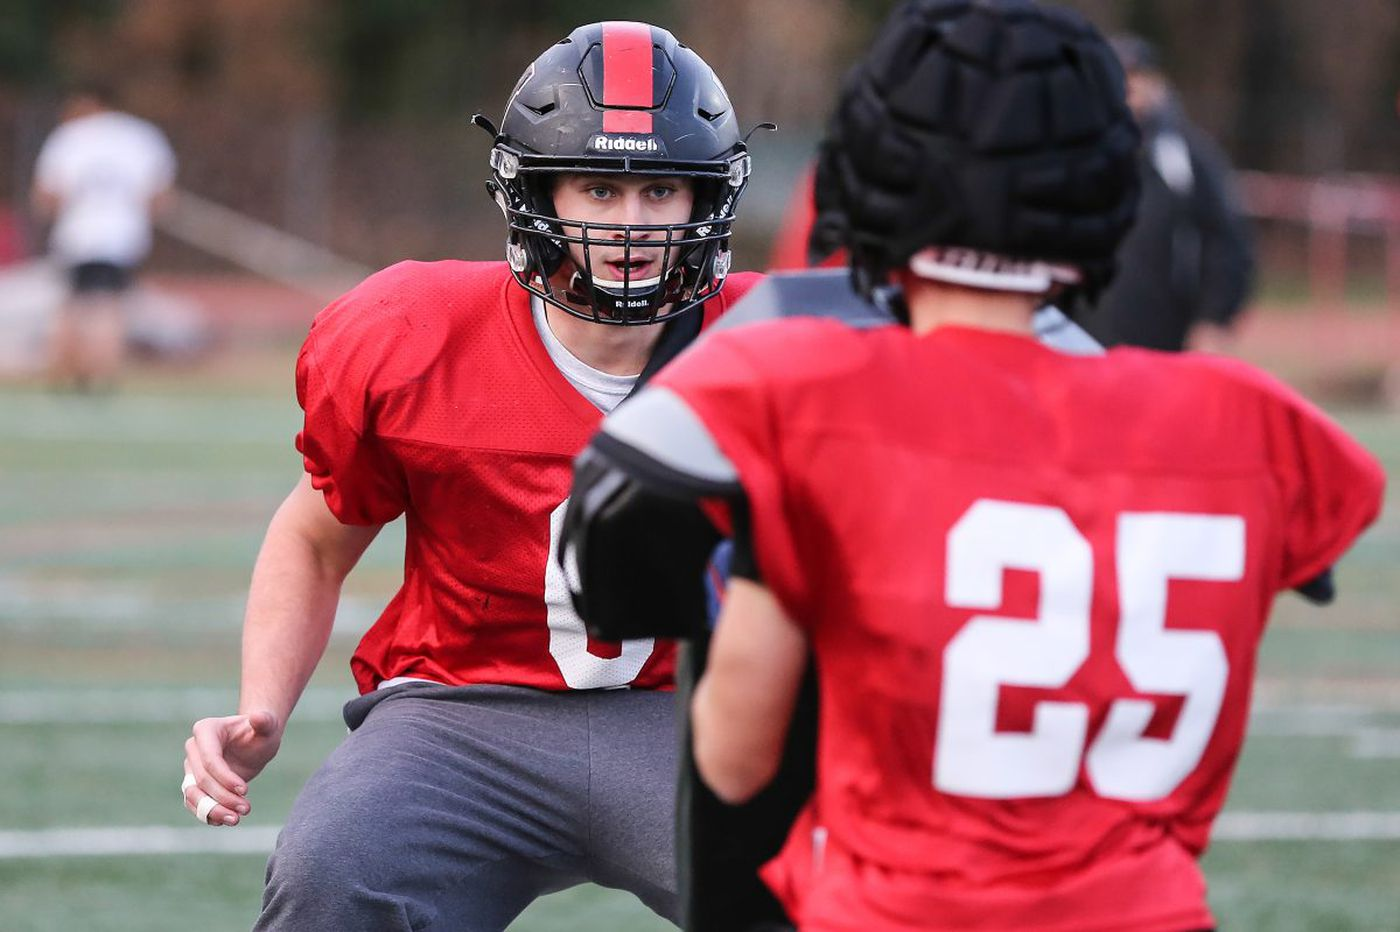 Haddonfield's Gabe Klaus carries on for his injured brother